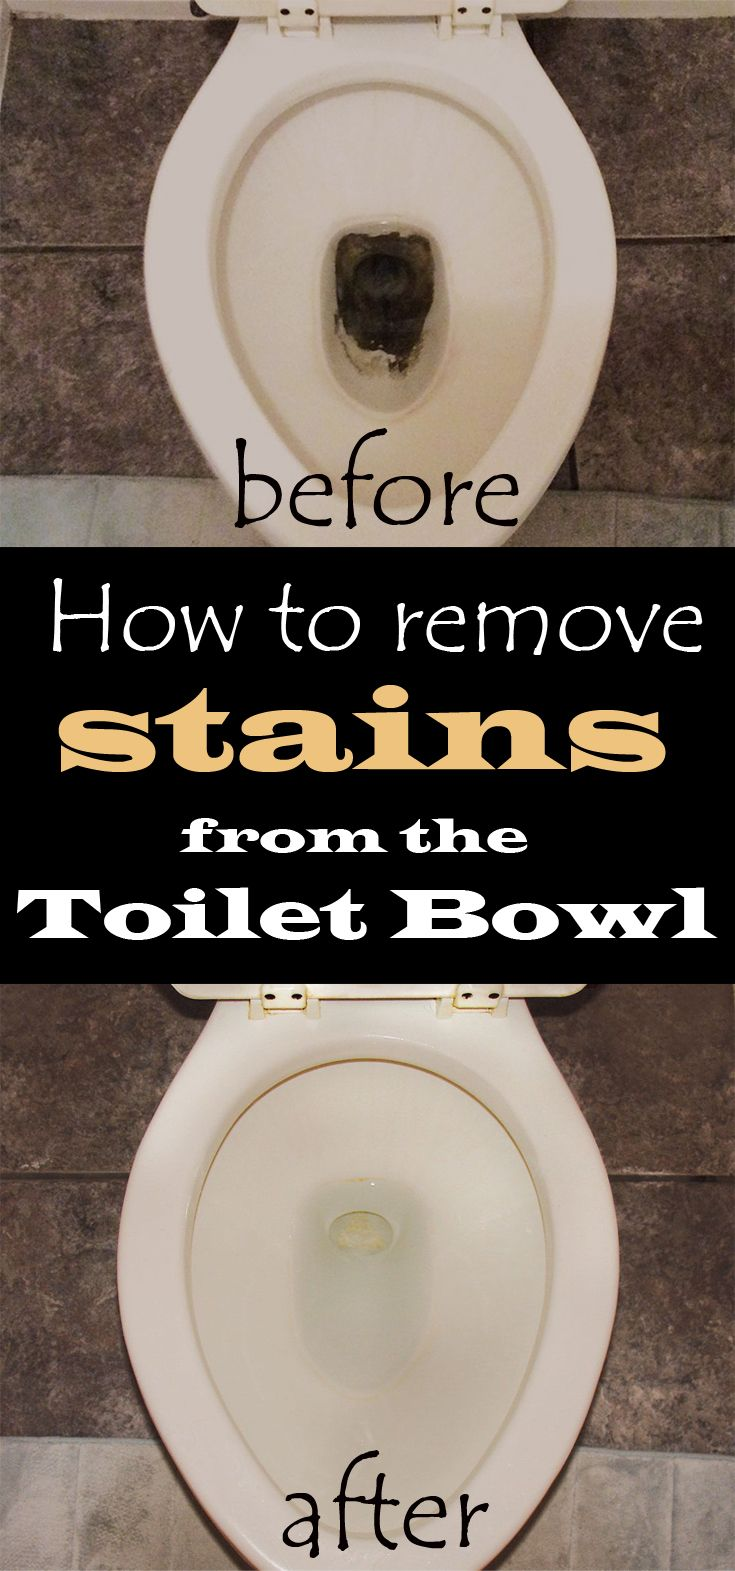 Learn how to remove stains from the toilet bowl.